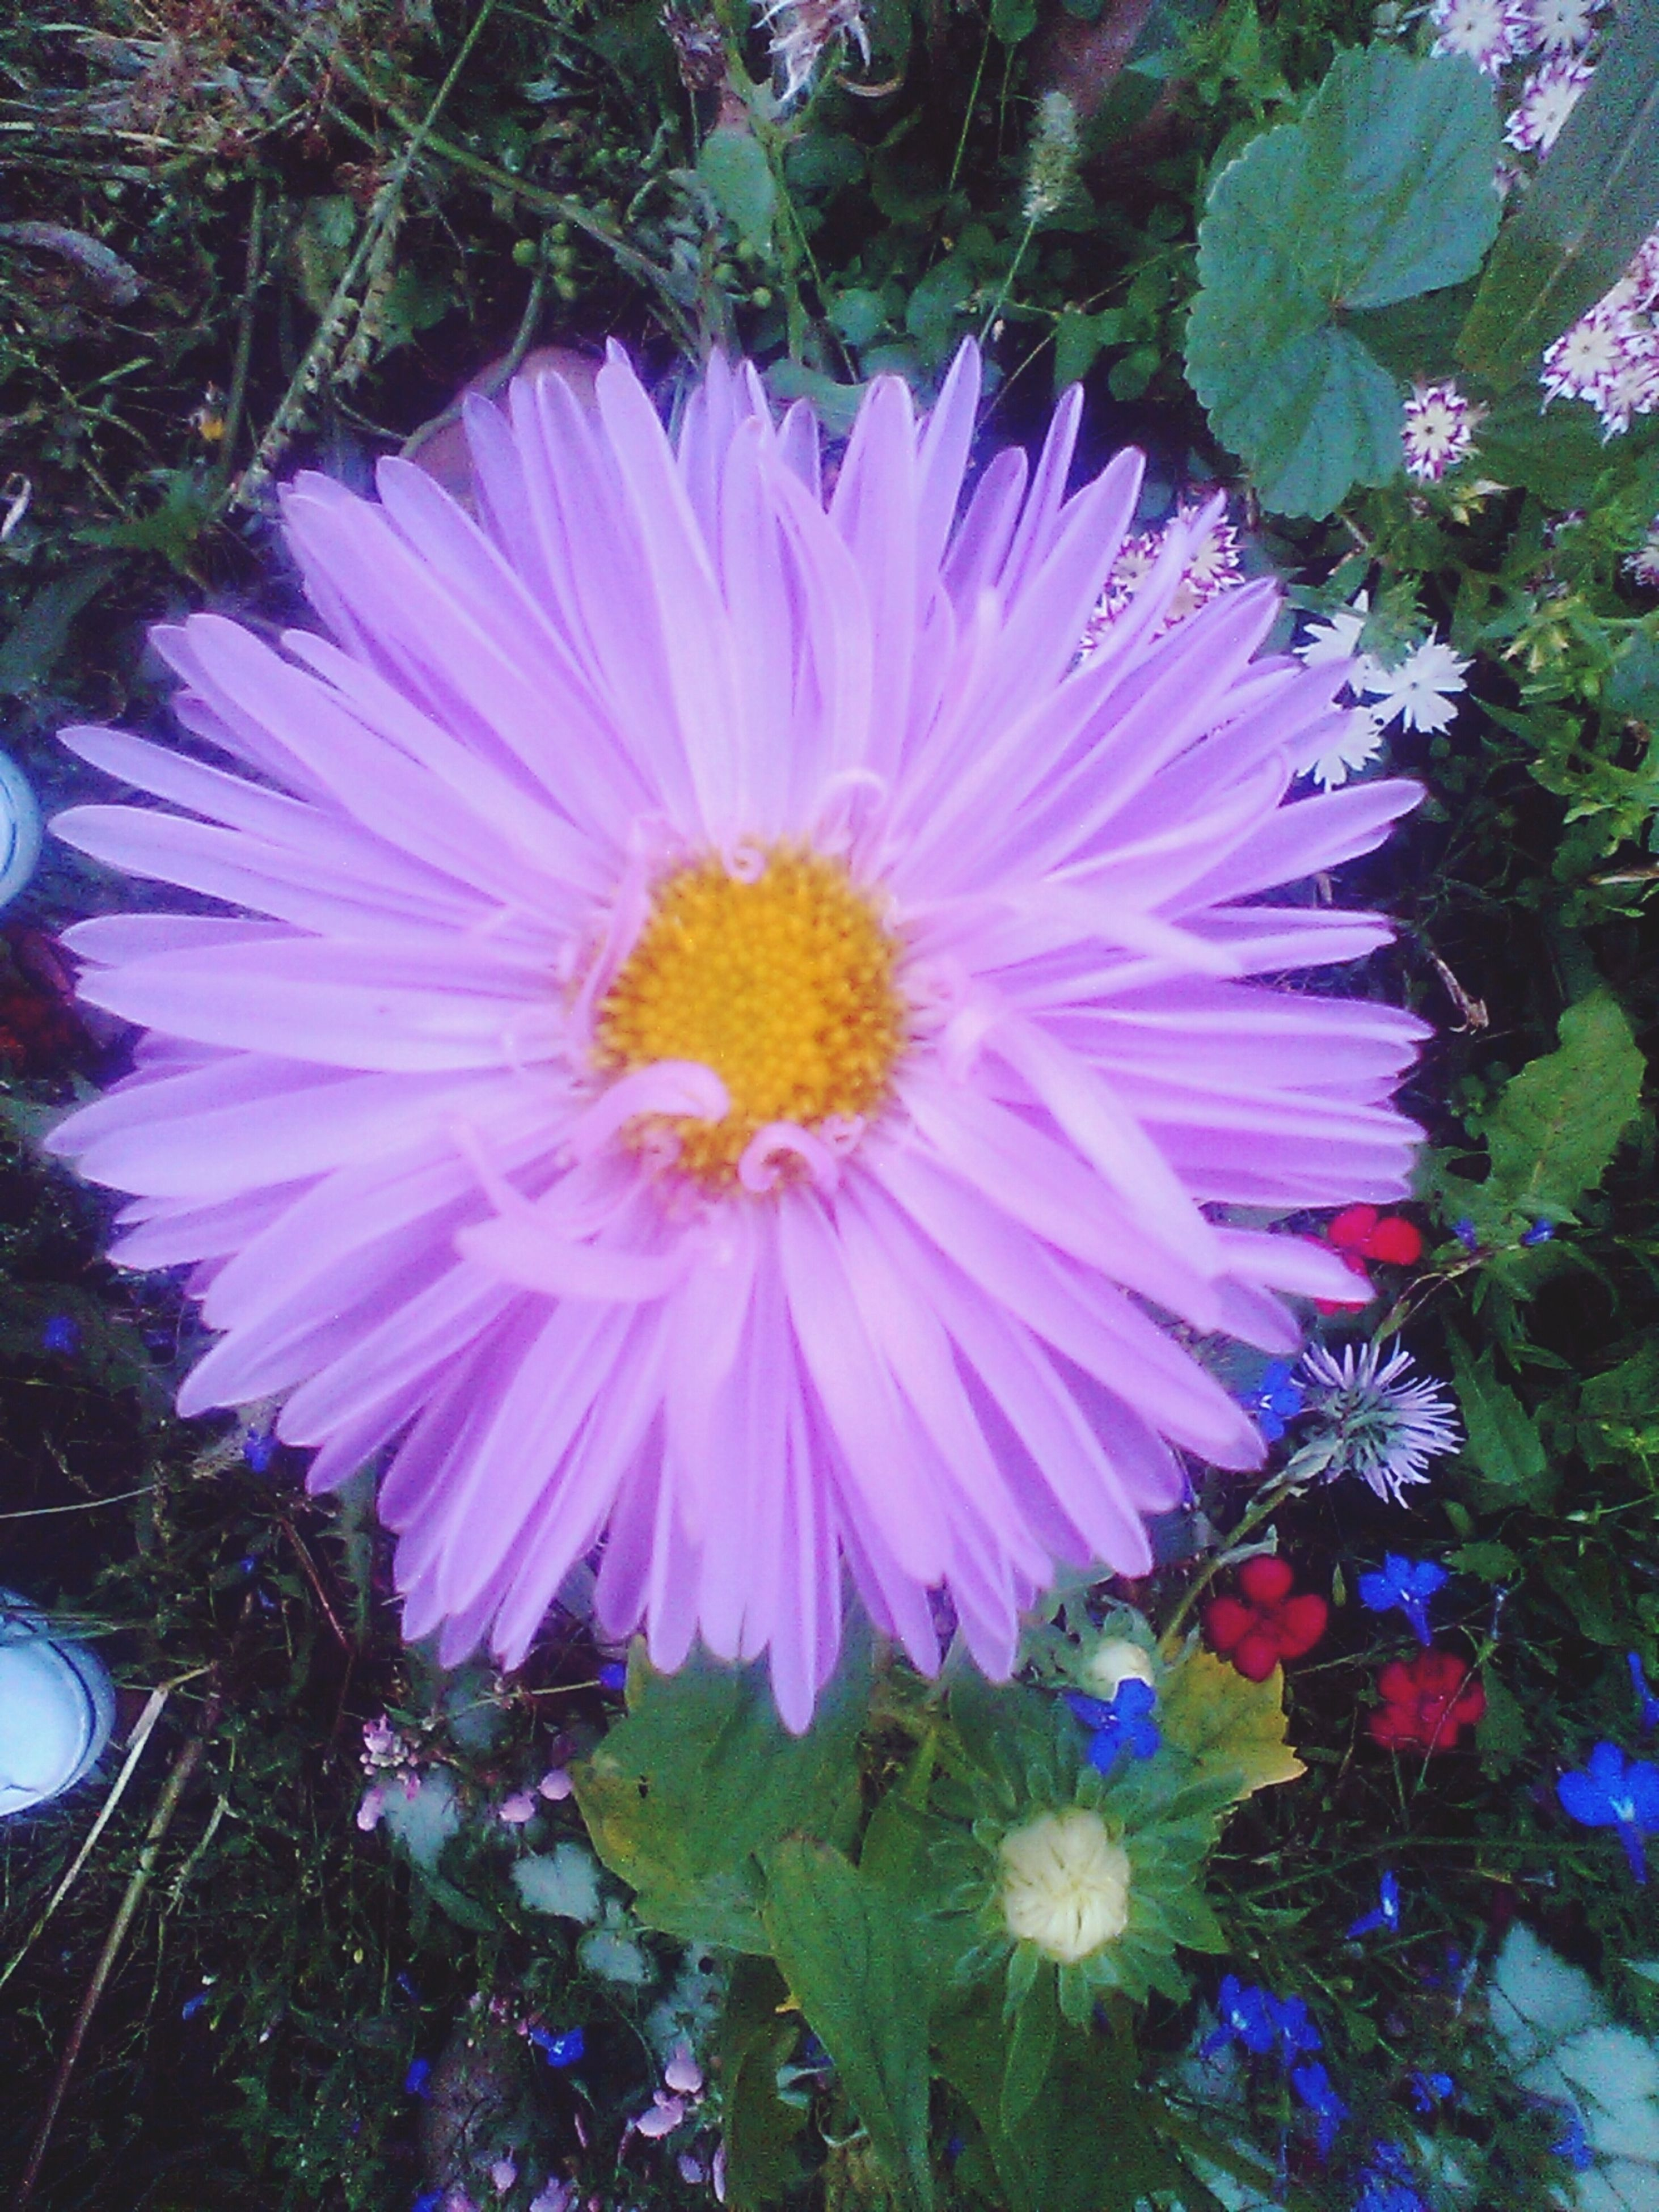 flower, petal, freshness, fragility, flower head, growth, beauty in nature, single flower, blooming, pollen, plant, nature, close-up, high angle view, purple, in bloom, pink color, leaf, outdoors, blossom